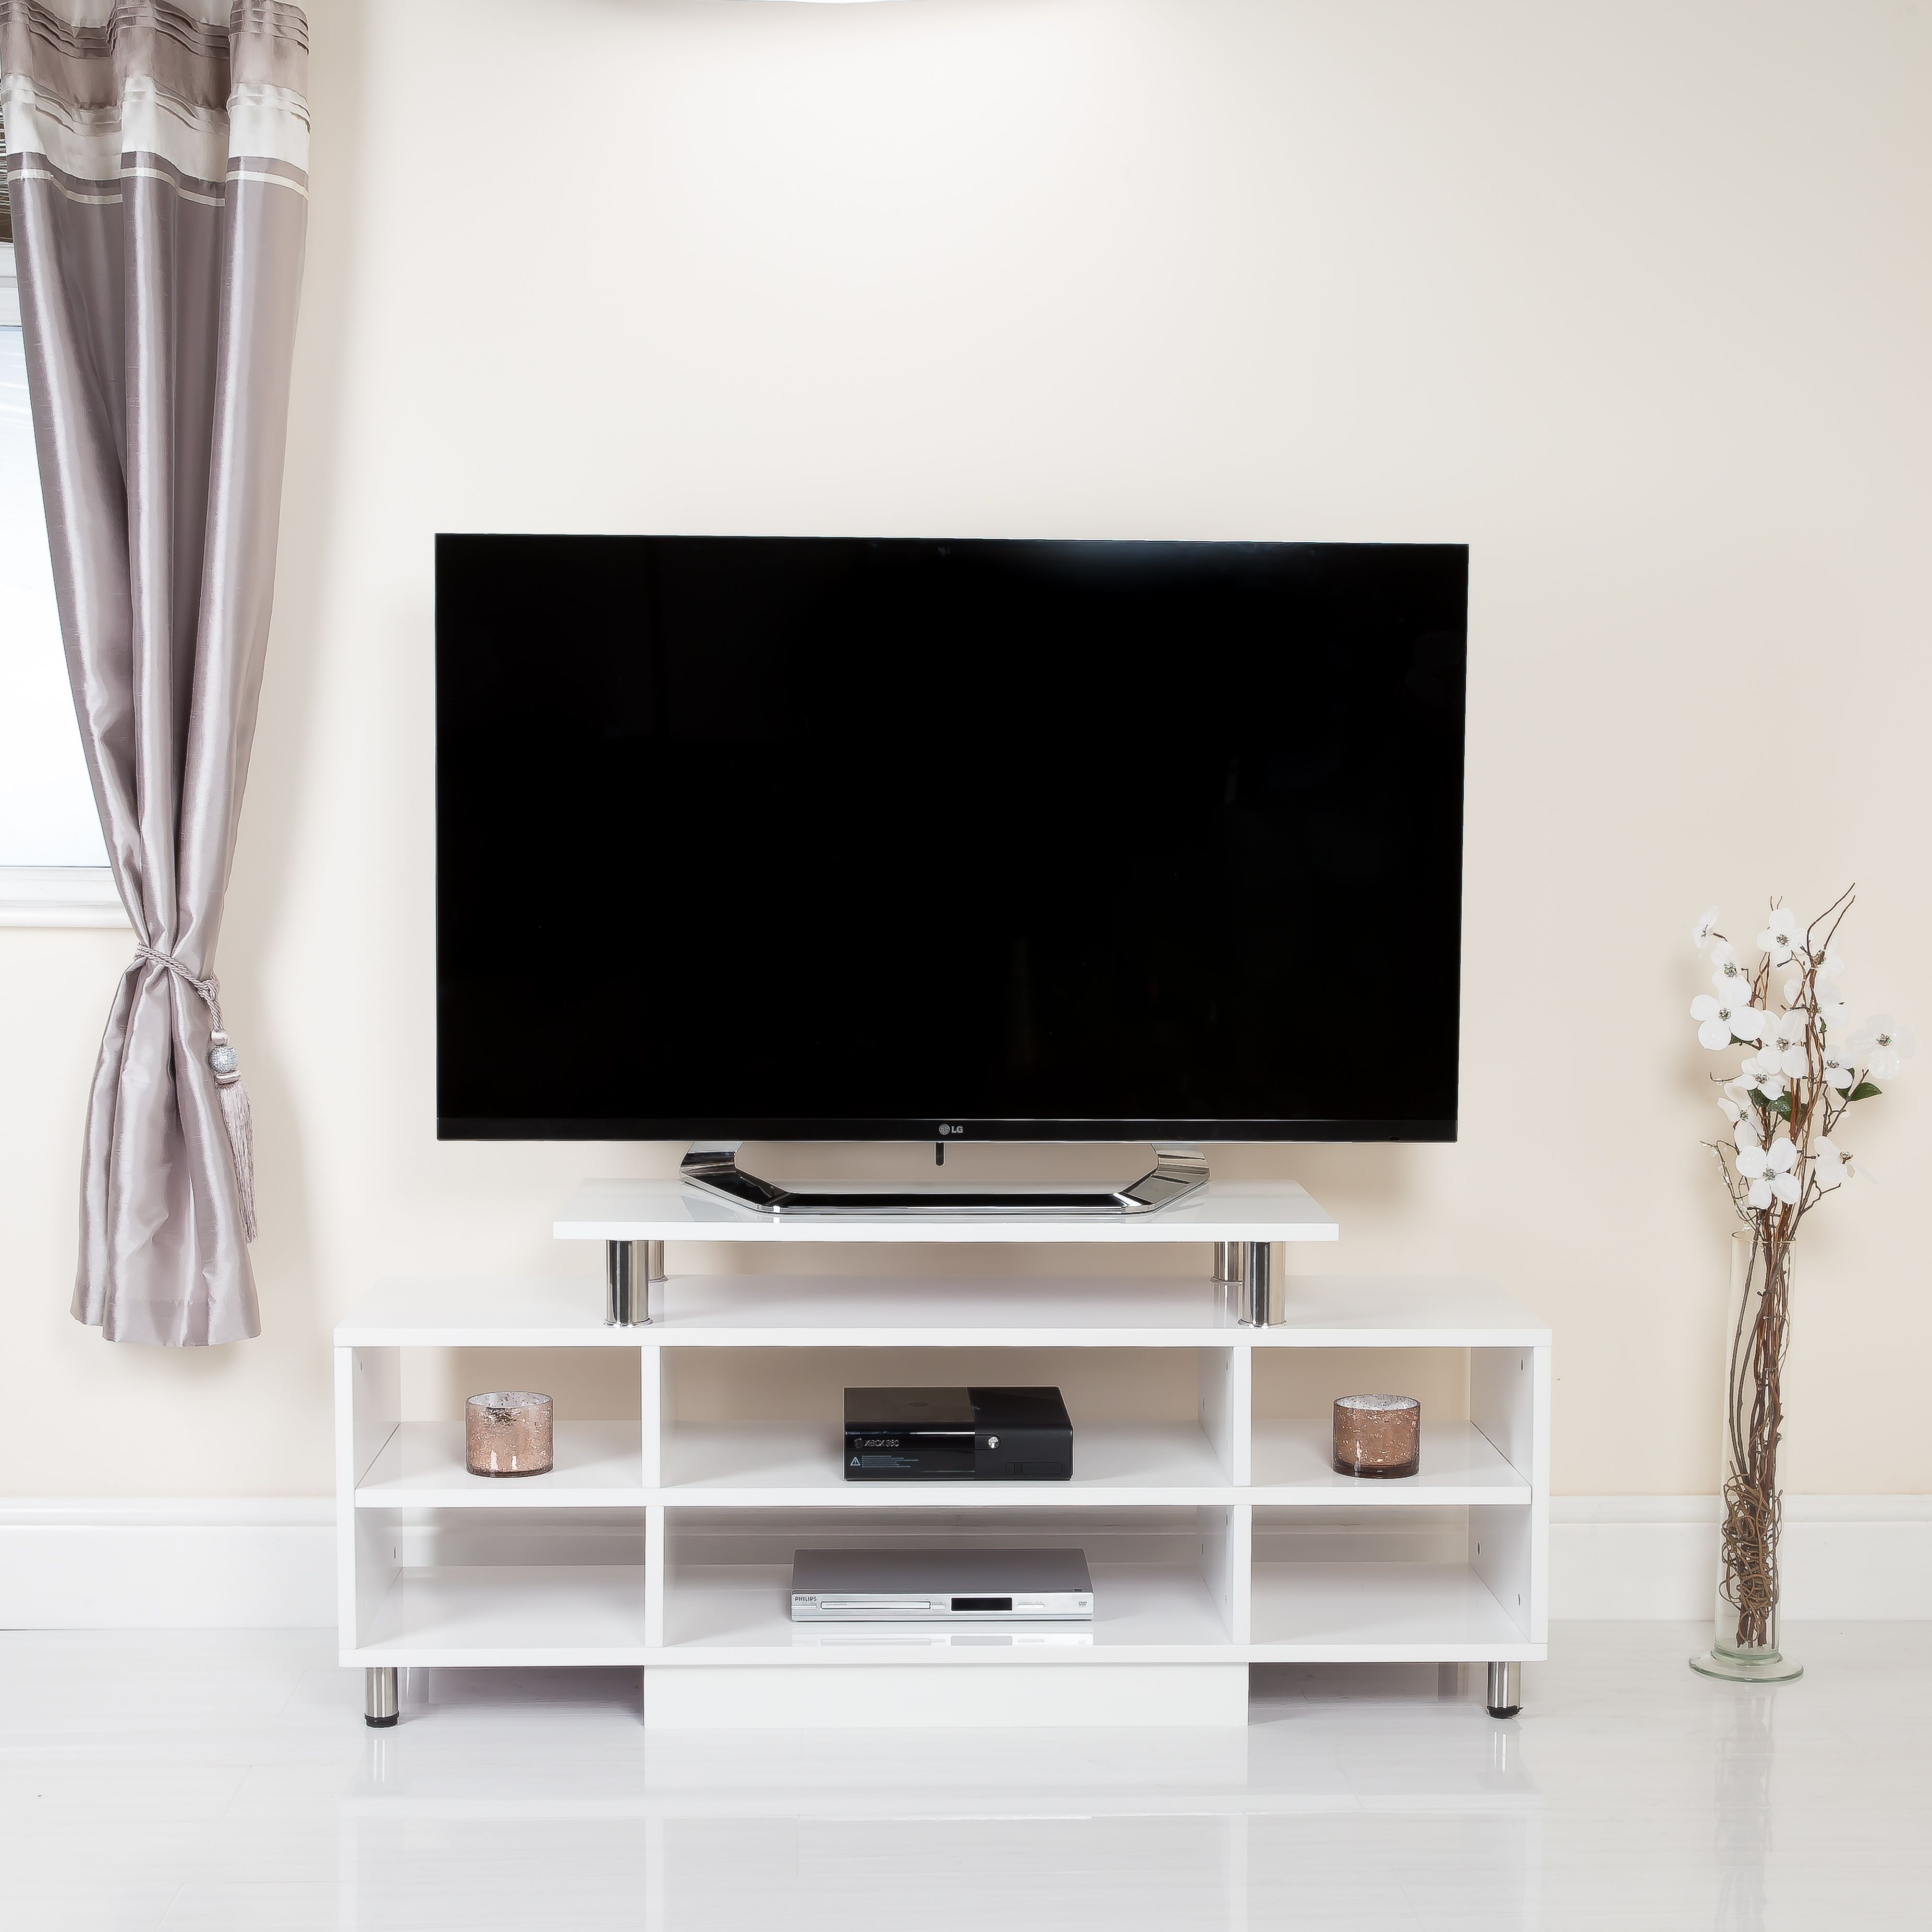 Http://abreo.co.uk/living Room Furniture/modern Tv  Stands/6 Shelf High Gloss White Tv Storage Unit #Modern #TVstand #White